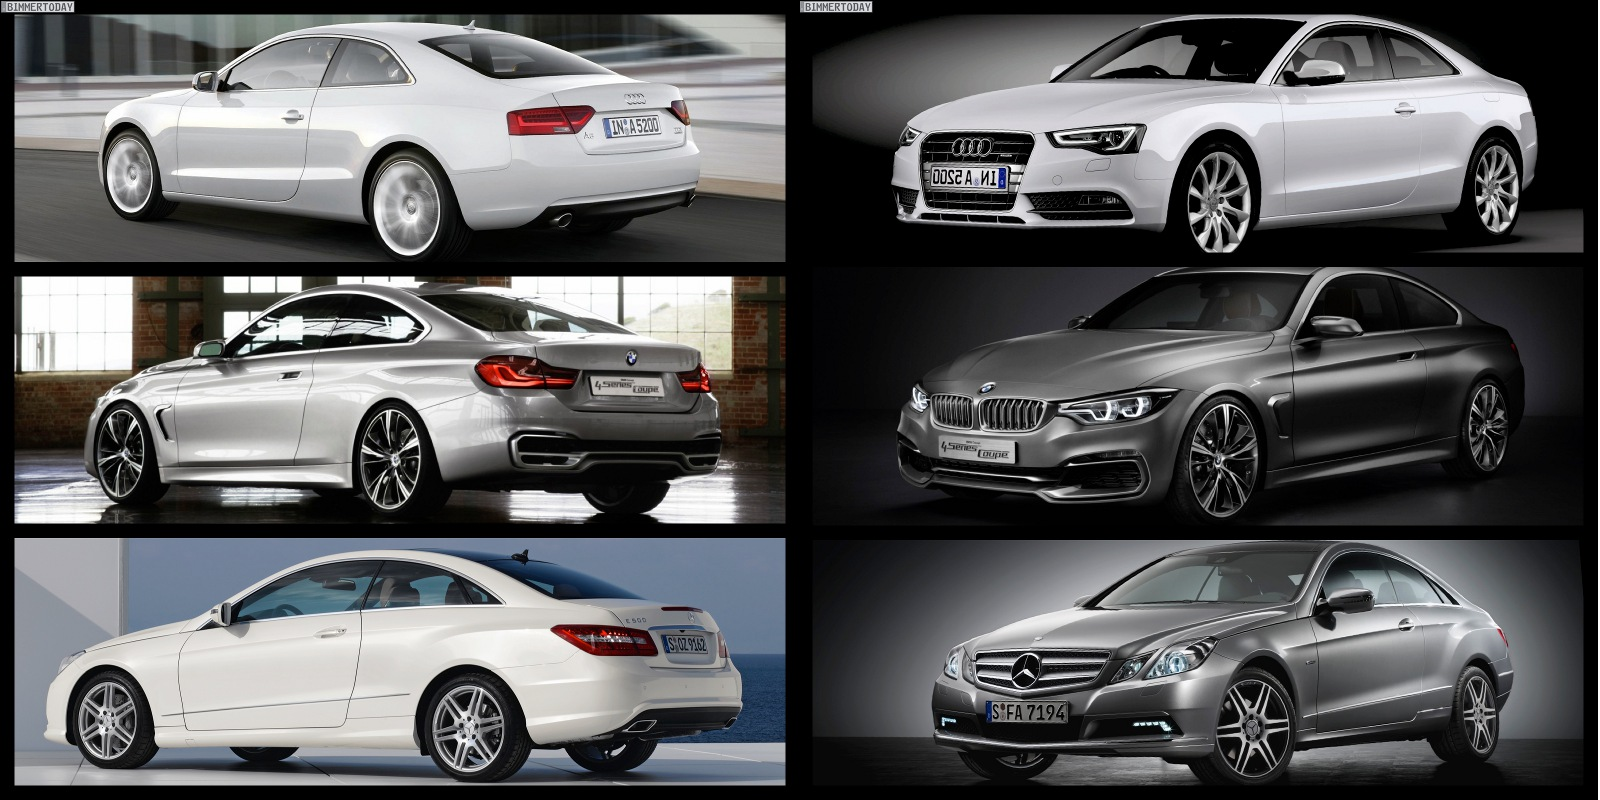 bmw 4er interesting news with the best bmw 4er pictures on. Black Bedroom Furniture Sets. Home Design Ideas